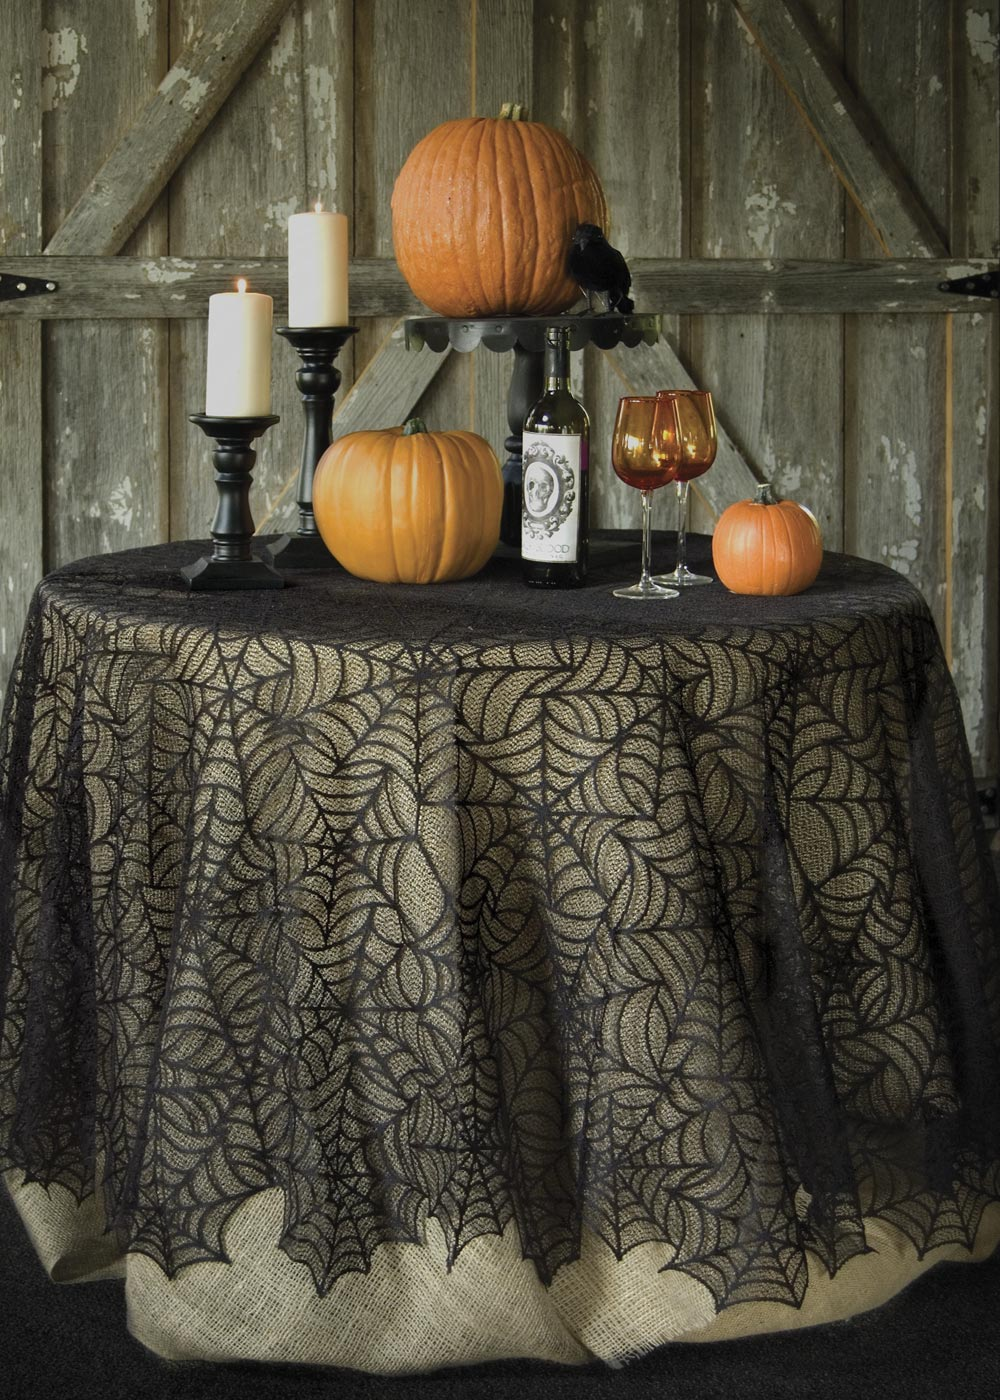 Spider Web Round Tablecloth 90